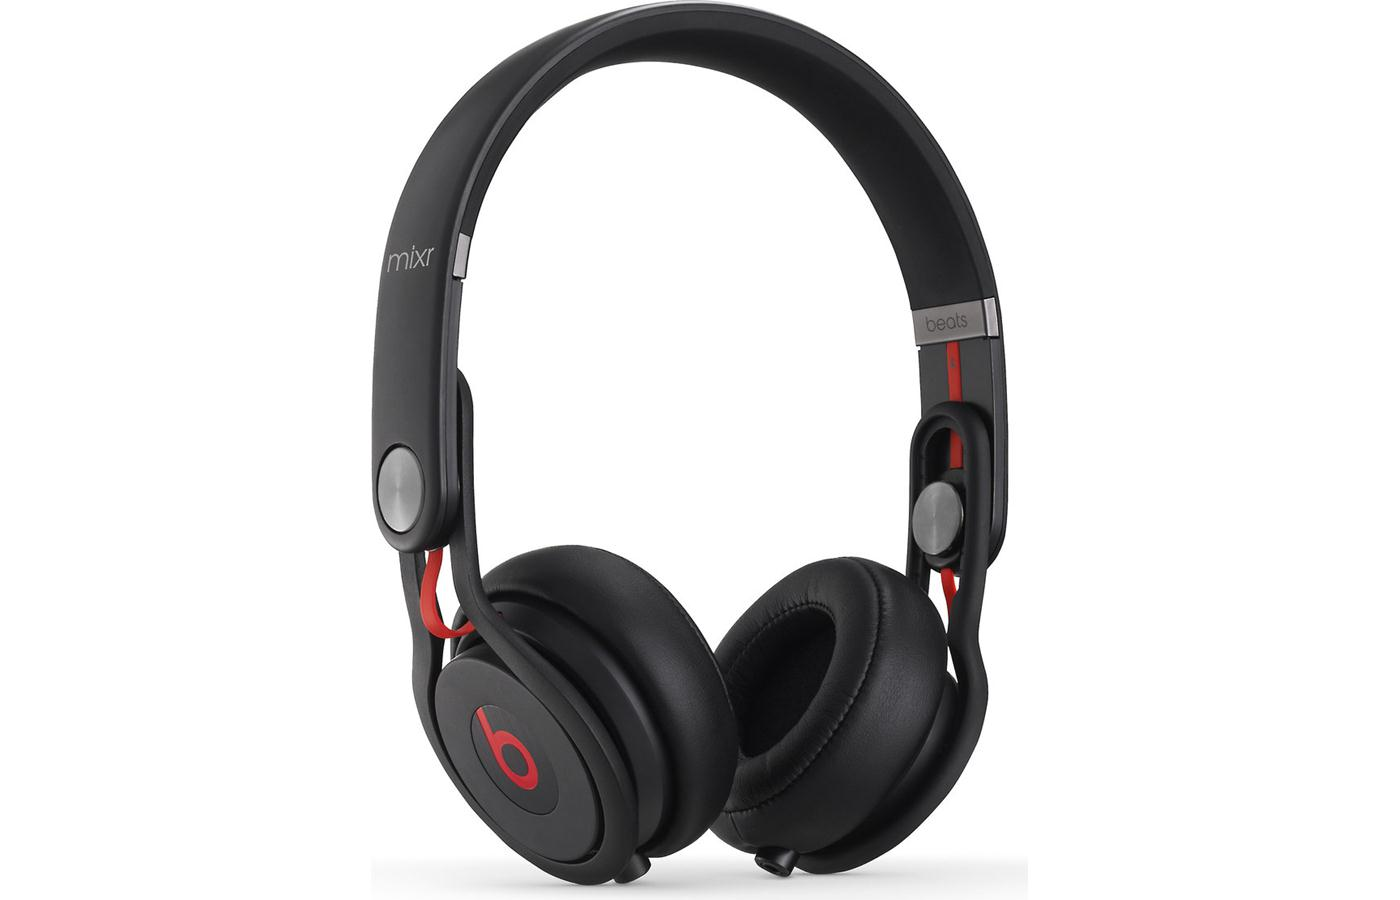 Beats by Dre Mixr Wired Headphones - Black - Check Back Soon - BLINQ